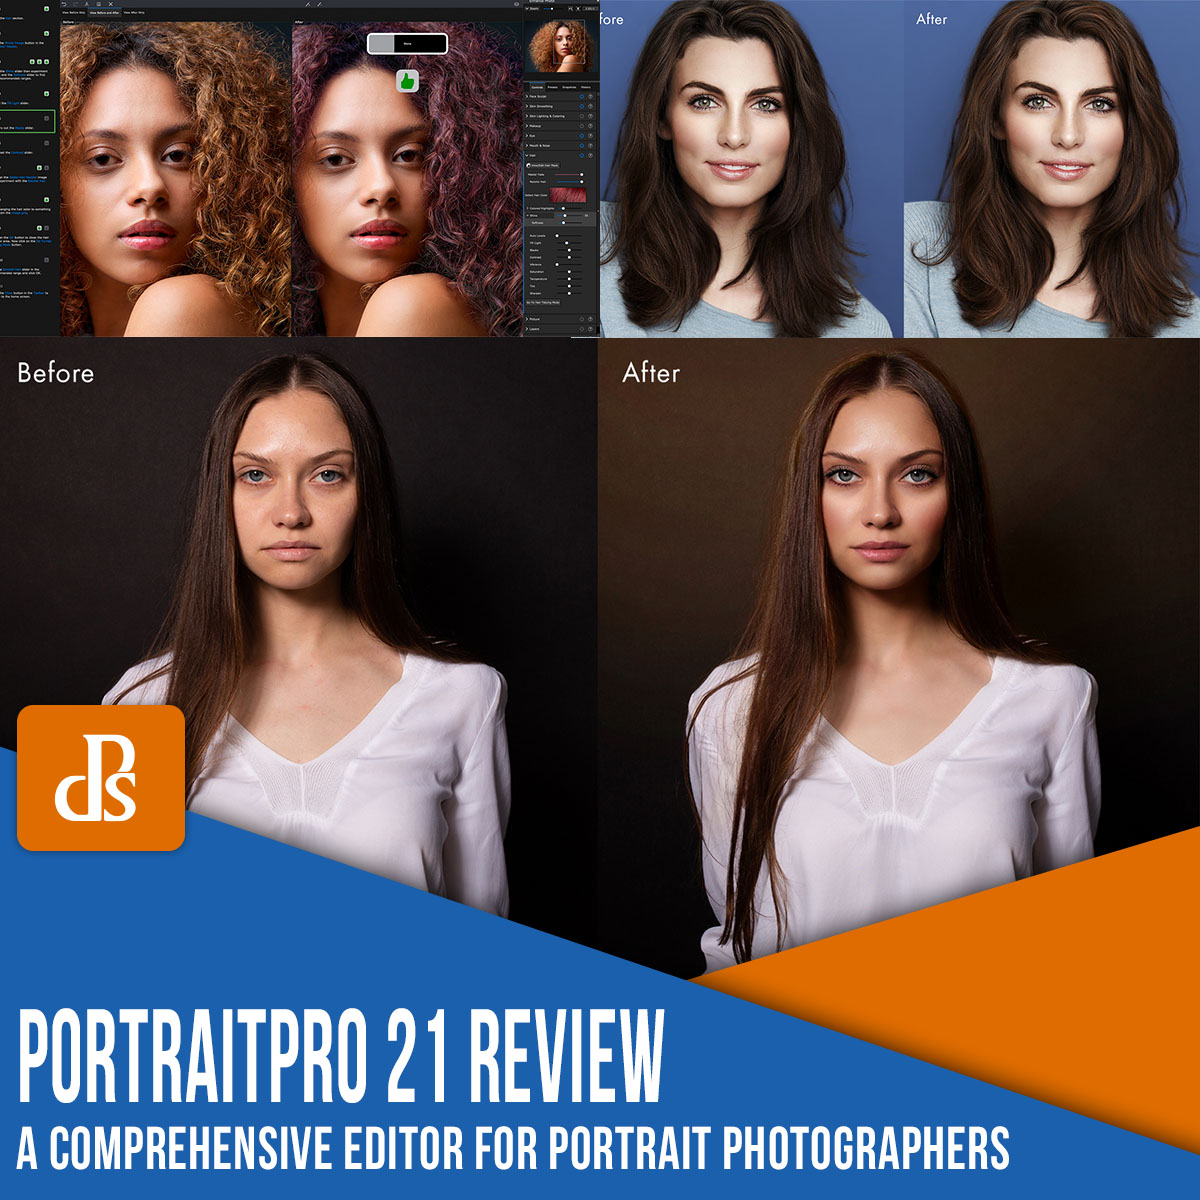 PortraitPro 21 Review: A Comprehensive Editor for Portrait Photographers